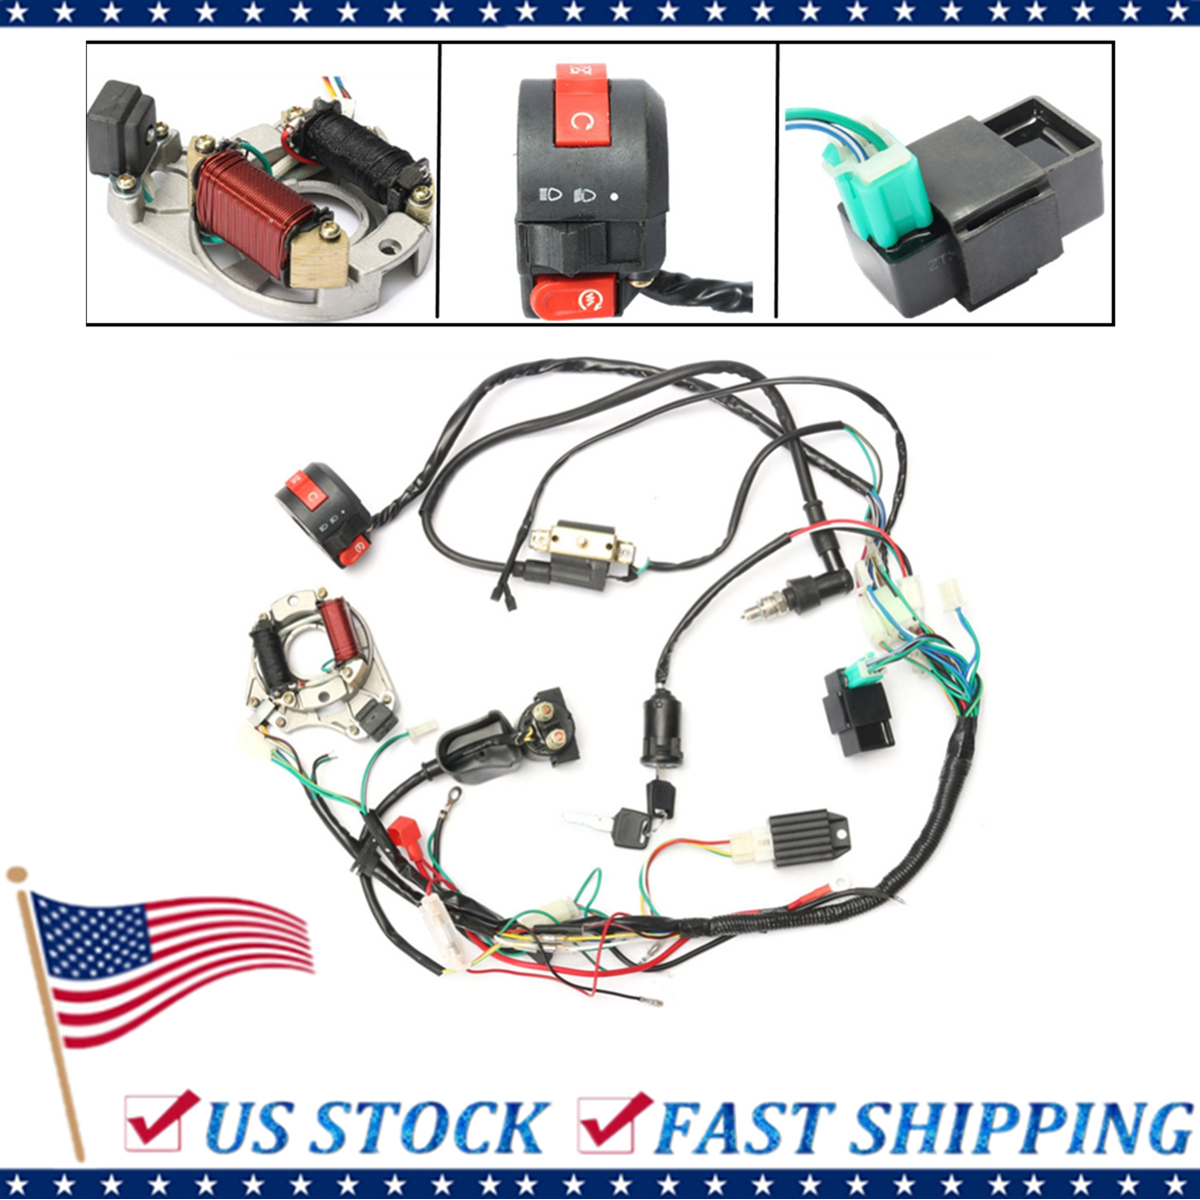 1 set 50 70 90 110cc cdi wire harness assembly wiring kit atv1 set 50 70 90 110cc cdi wire harness assembly wiring kit atv electric start quad only fit for  [ 1200 x 1200 Pixel ]